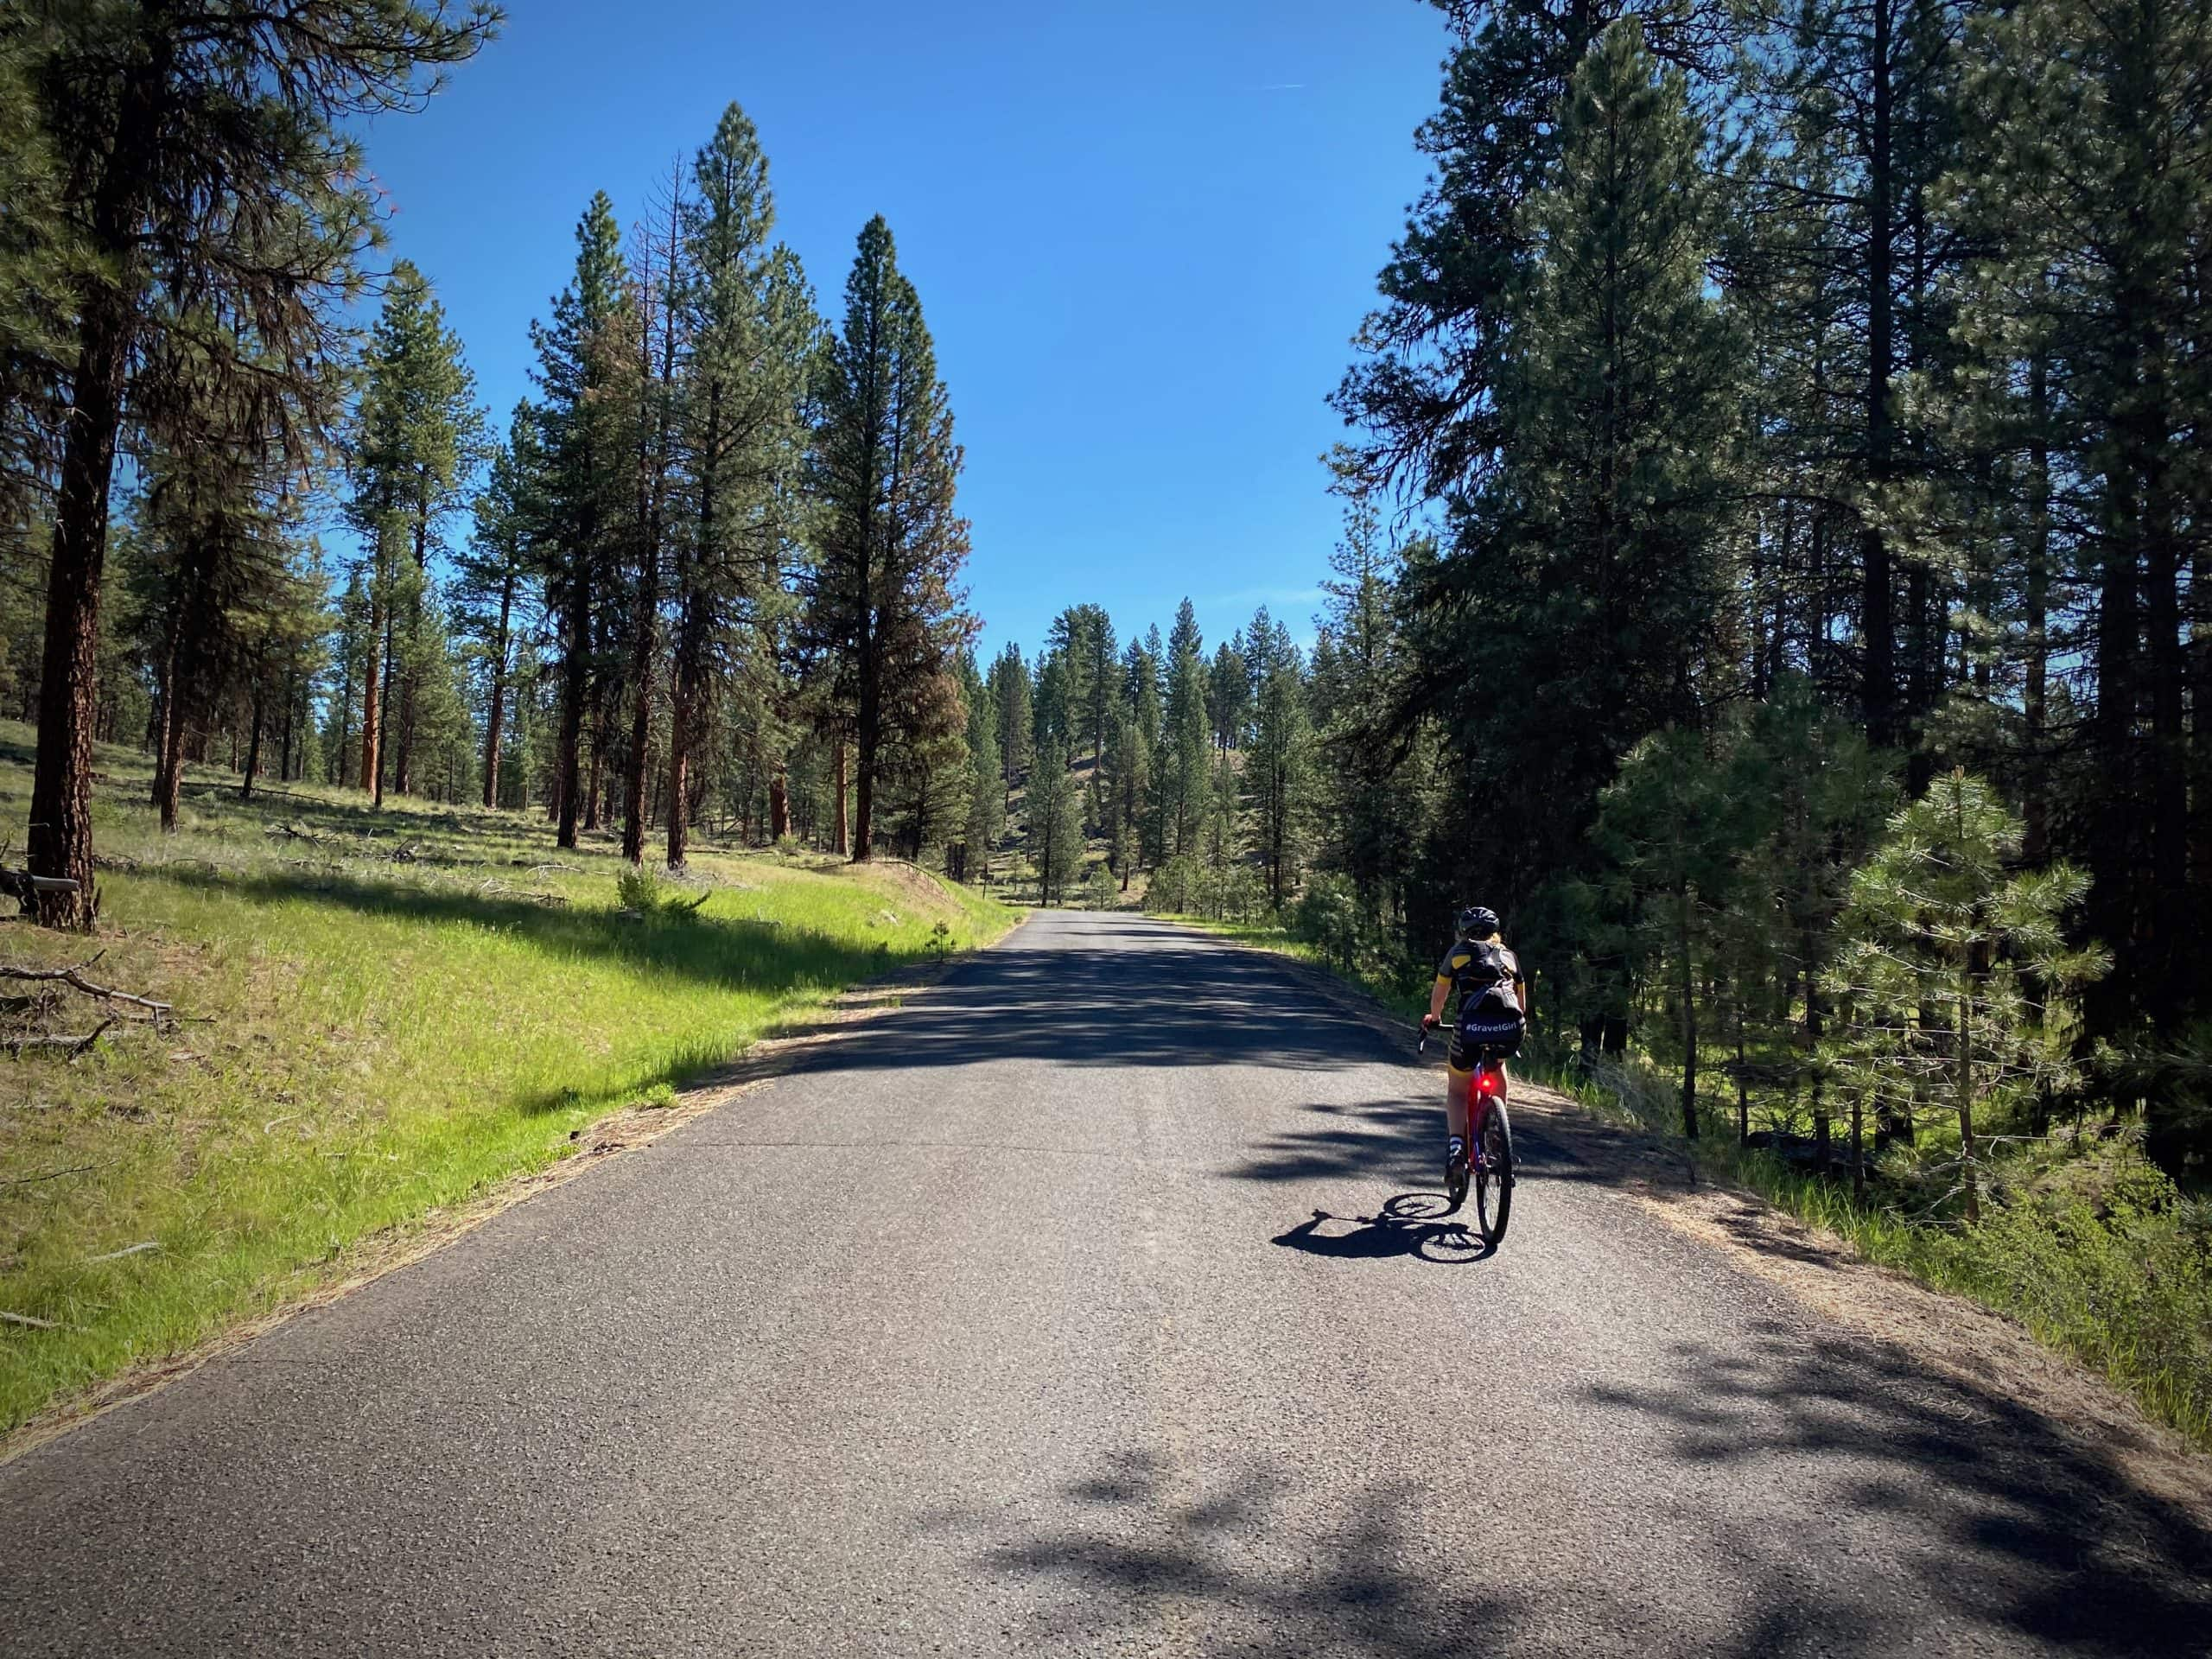 Cyclist on paved Forest Service road in the Ochoco National forest near Paulina, Oregon.